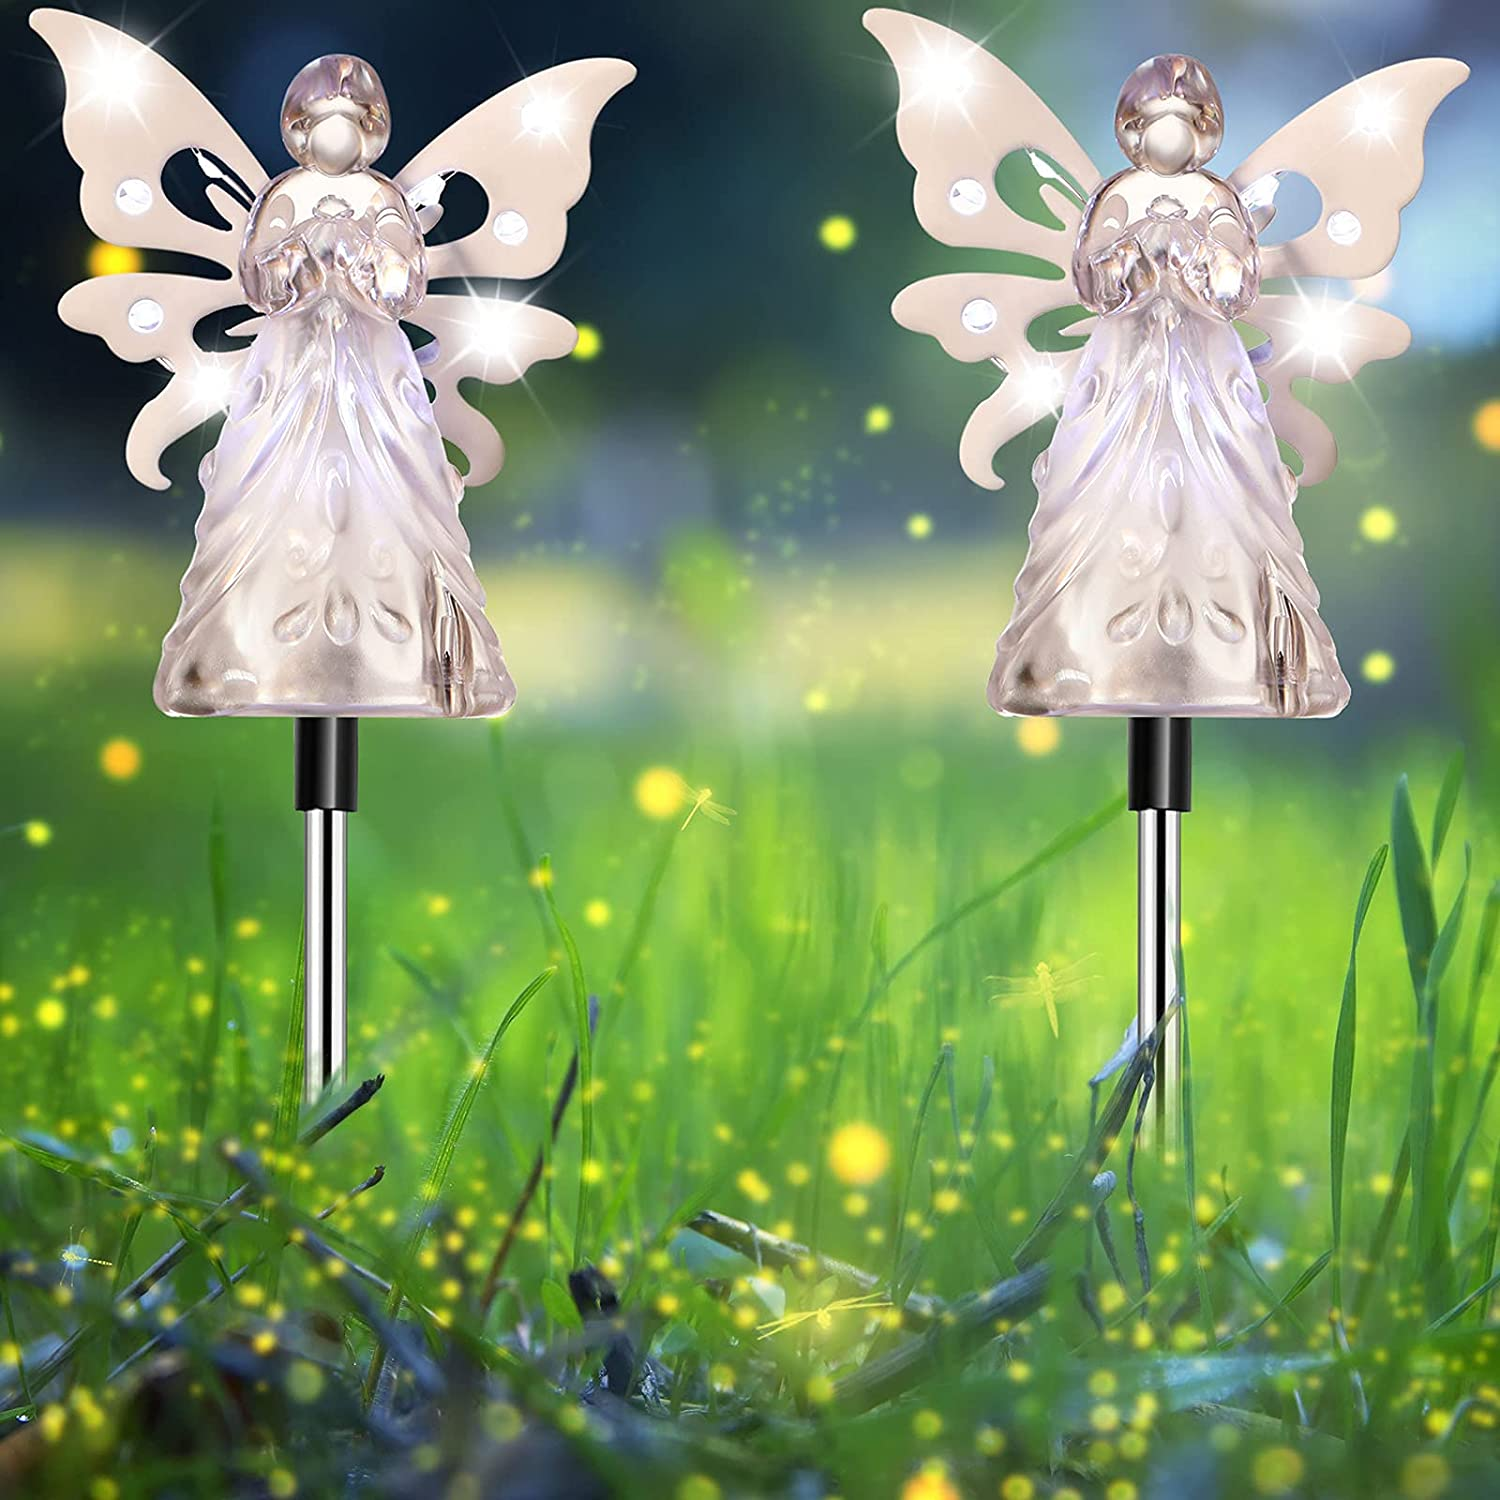 2 Pieces Solar Decorative Garden Stake Angel Design Lights Acrylic Beautiful Decoration for Outdoor Garden Patio Pathway, 35.5 Inch in Height (Clear)